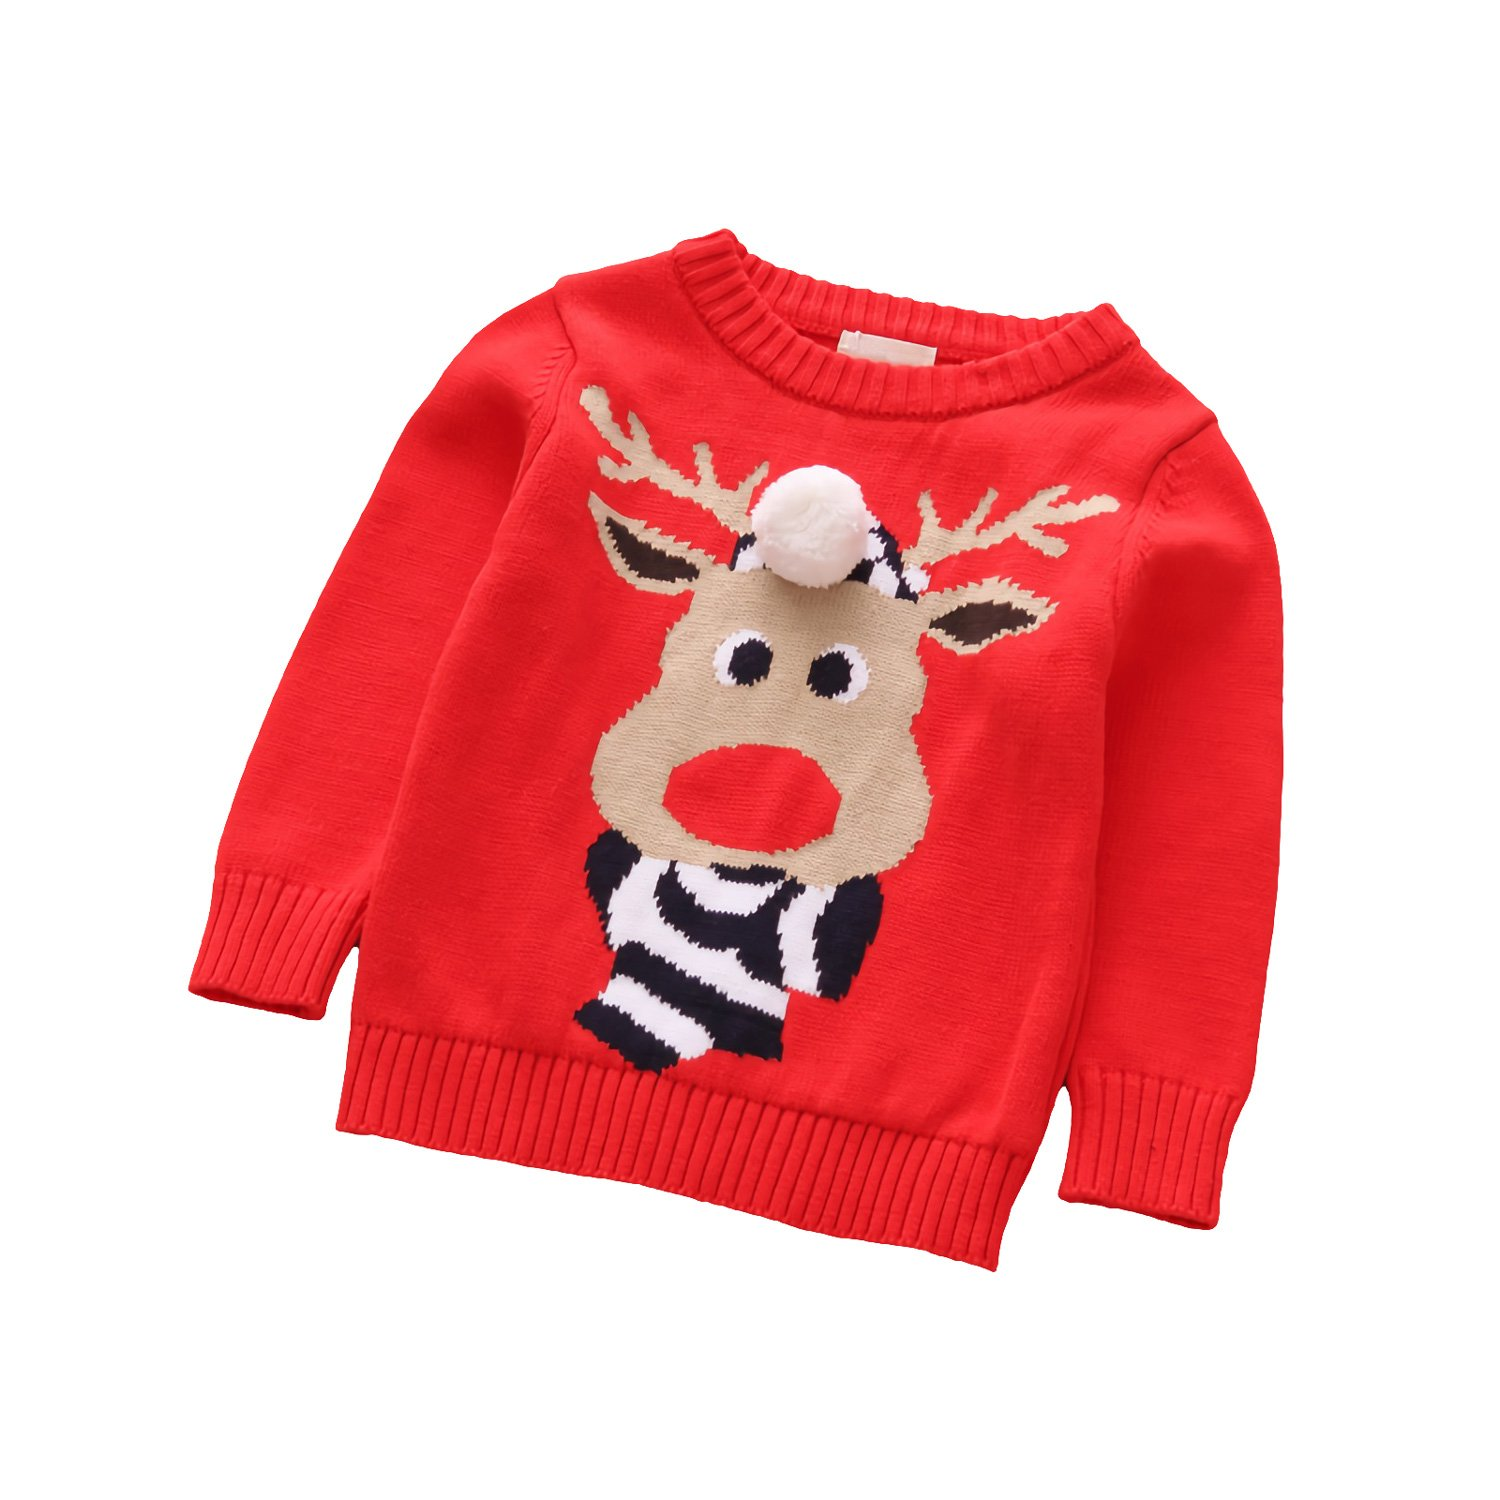 8f30216e97d2 Top 10 wholesale Adorable Christmas Sweaters - Chinabrands.com